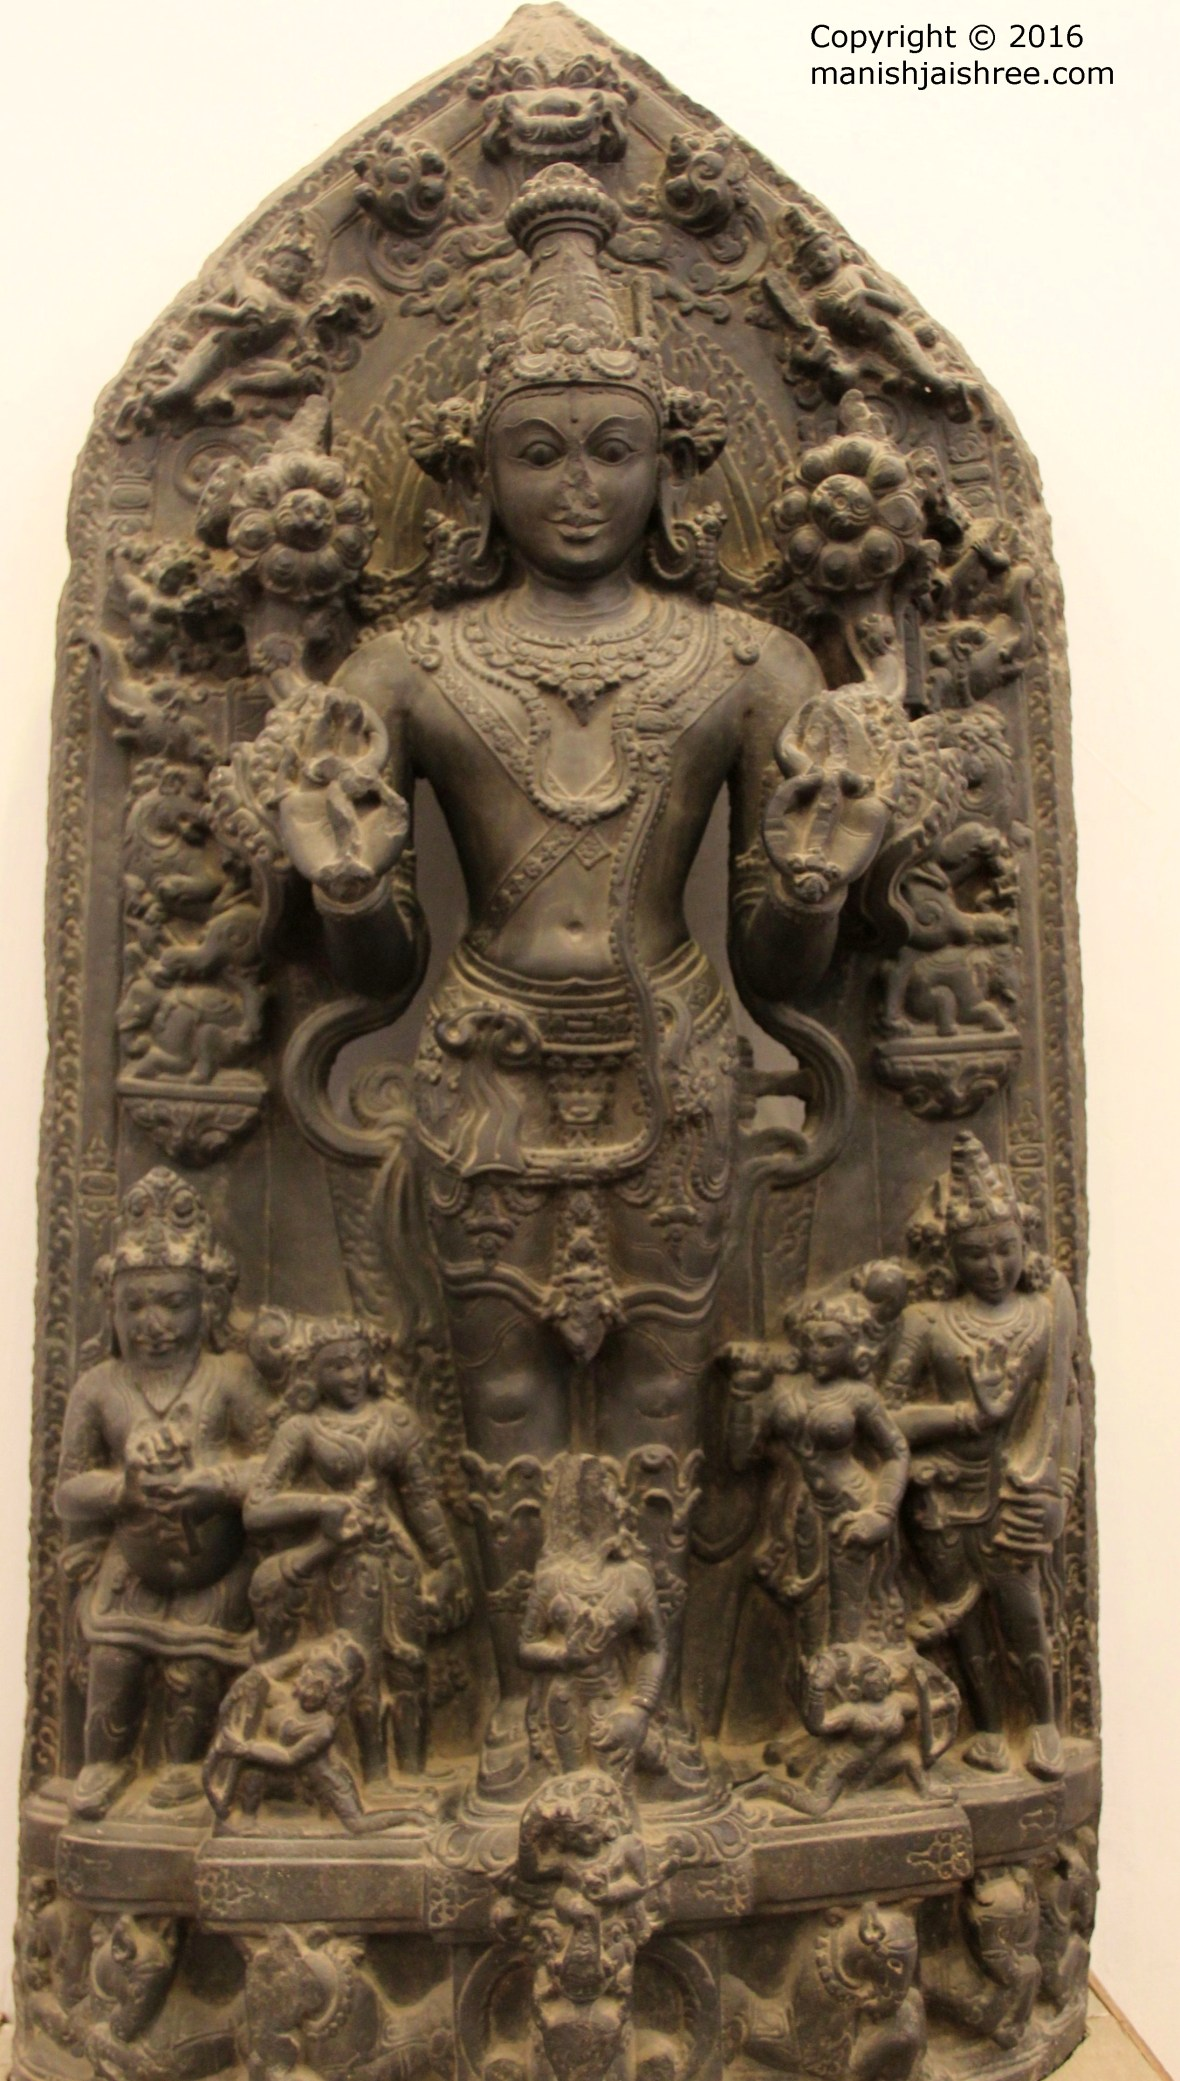 A statue of Sun-God in National Museum, N.Delhi